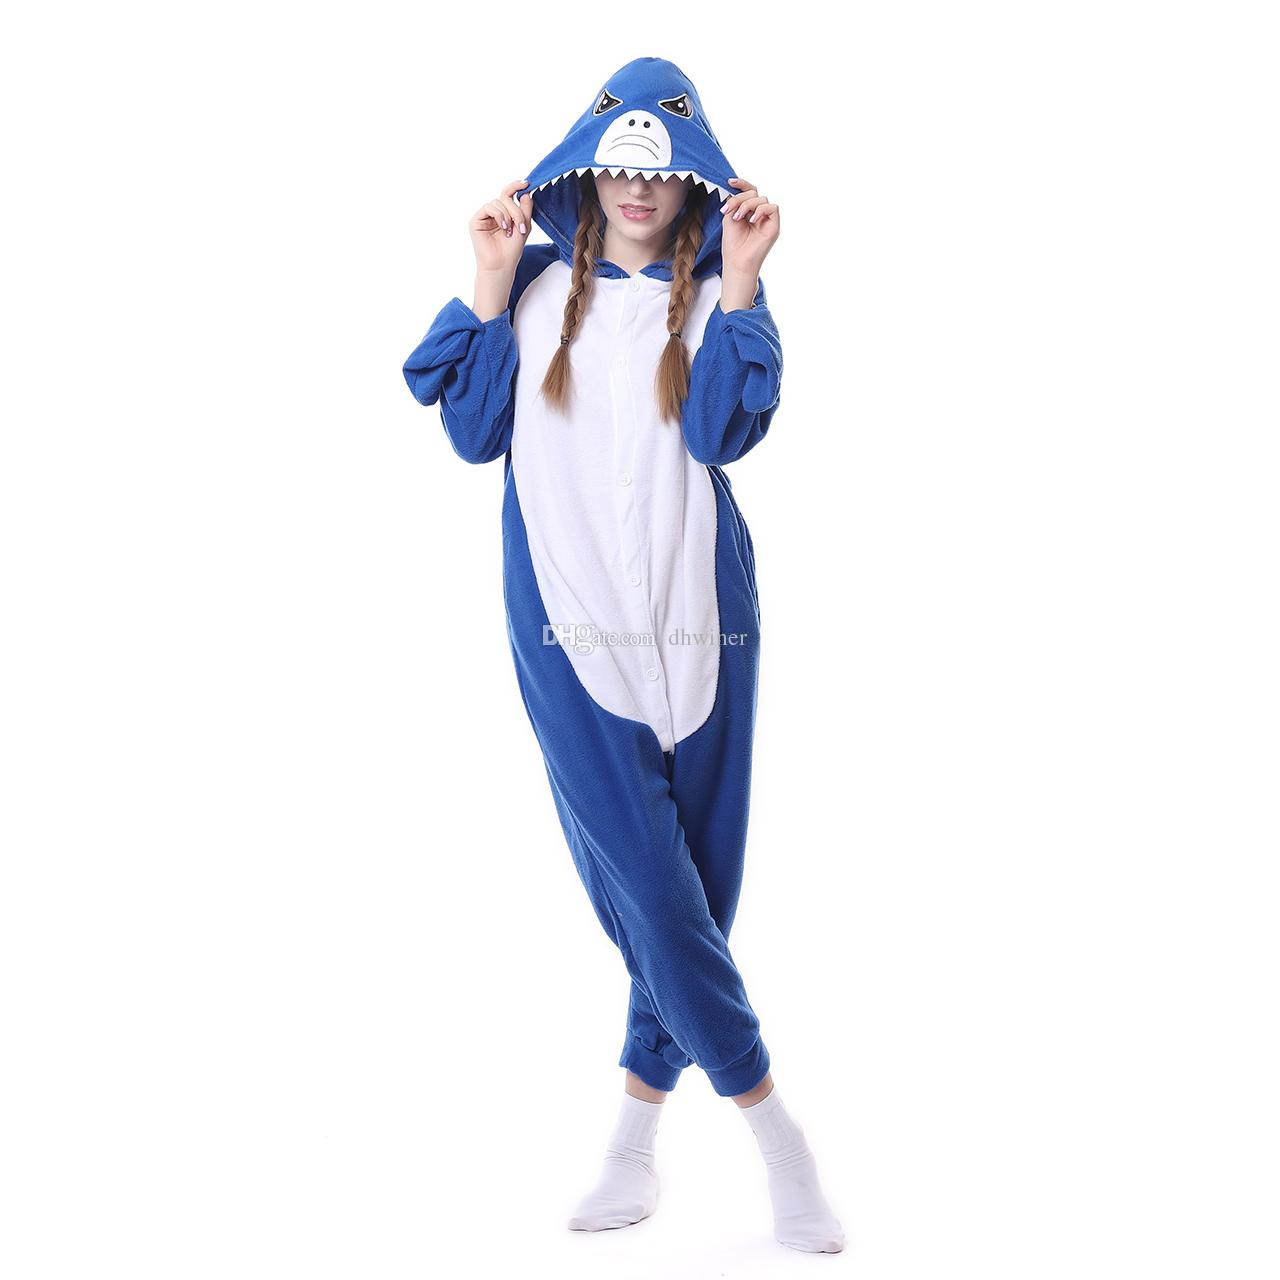 6ab450c284 Unisex Adult OnePiece Onesie Cosplay Costumes Kigurumi Animal Outfit  Loungewear Shark Superman Costume Halloween Costumes For Couples From  Dhwiner